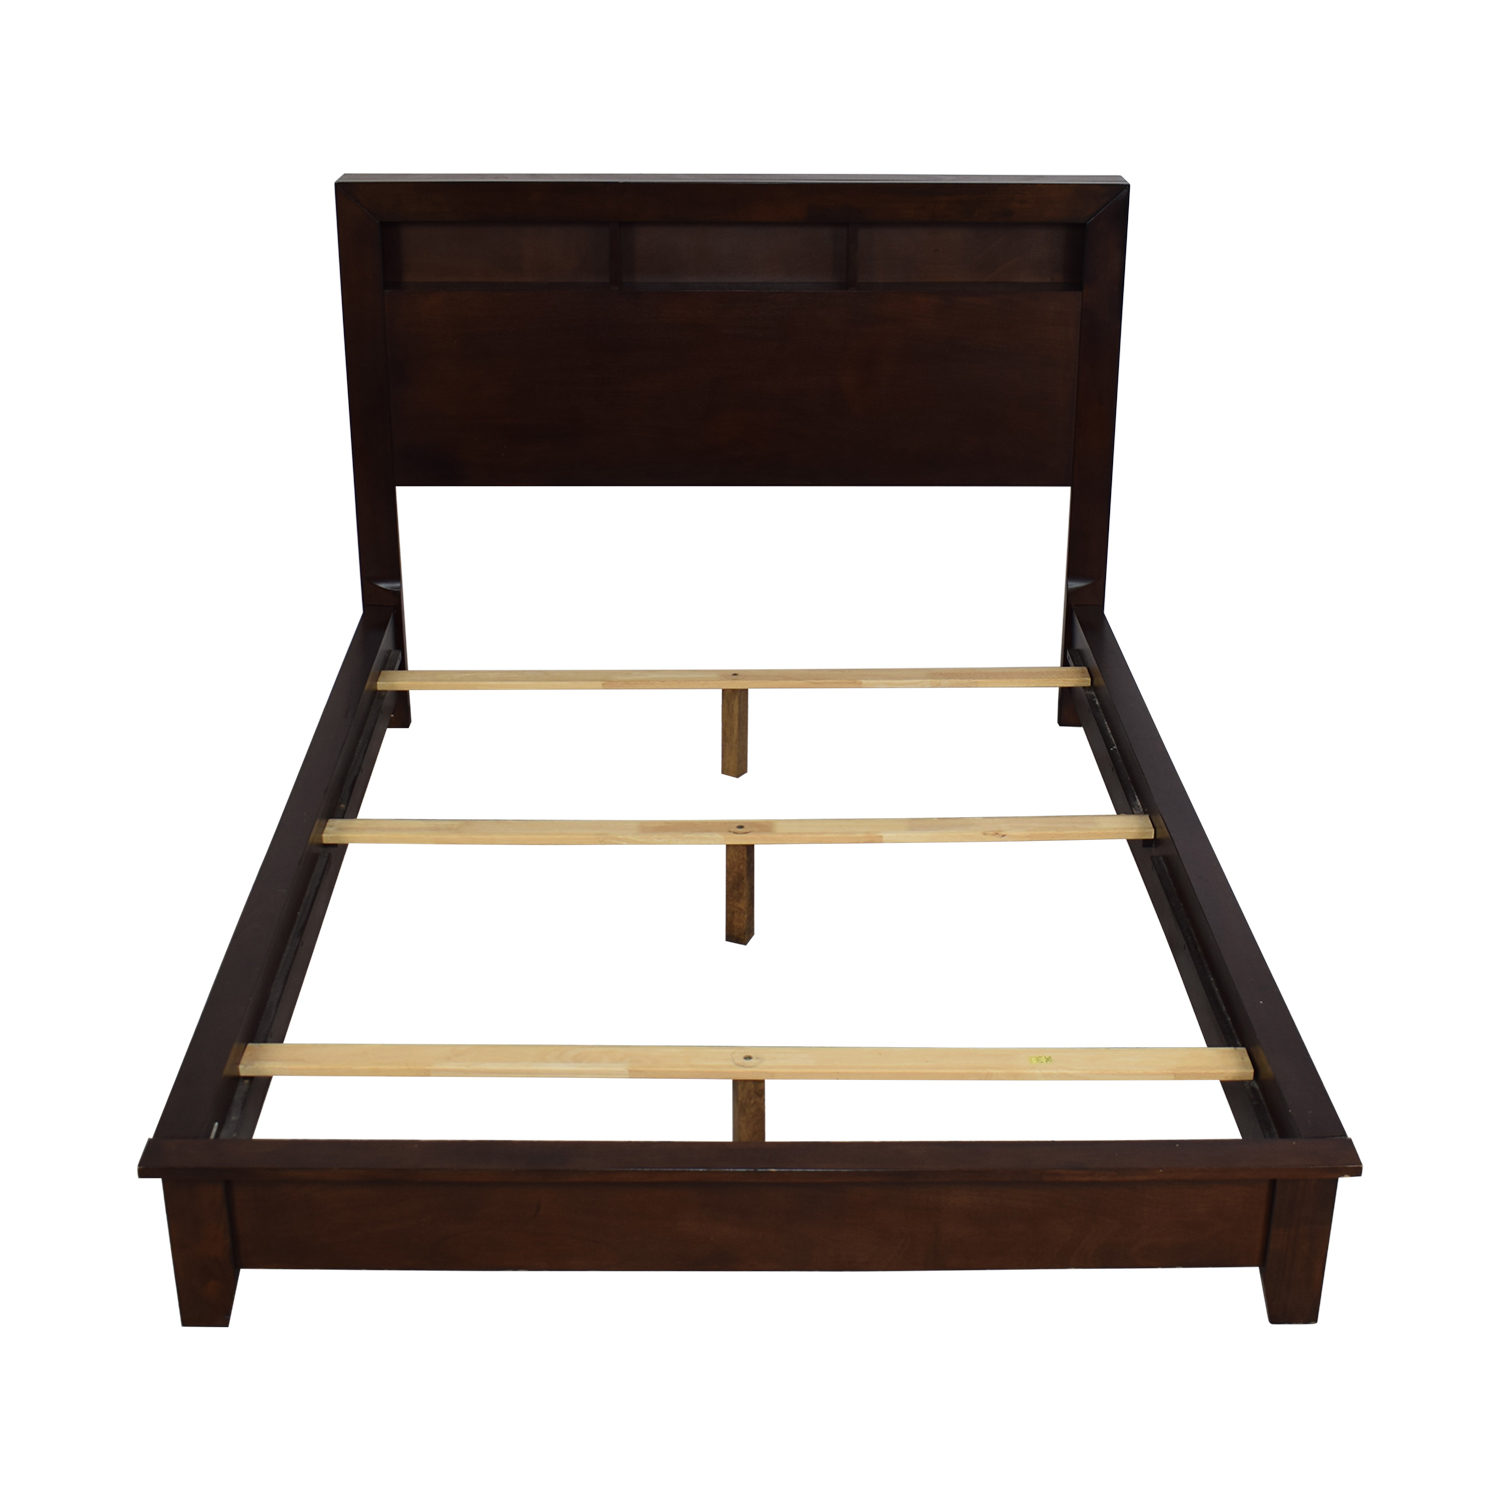 American Furniture Warehouse American Furniture Queen Bed Frame second hand